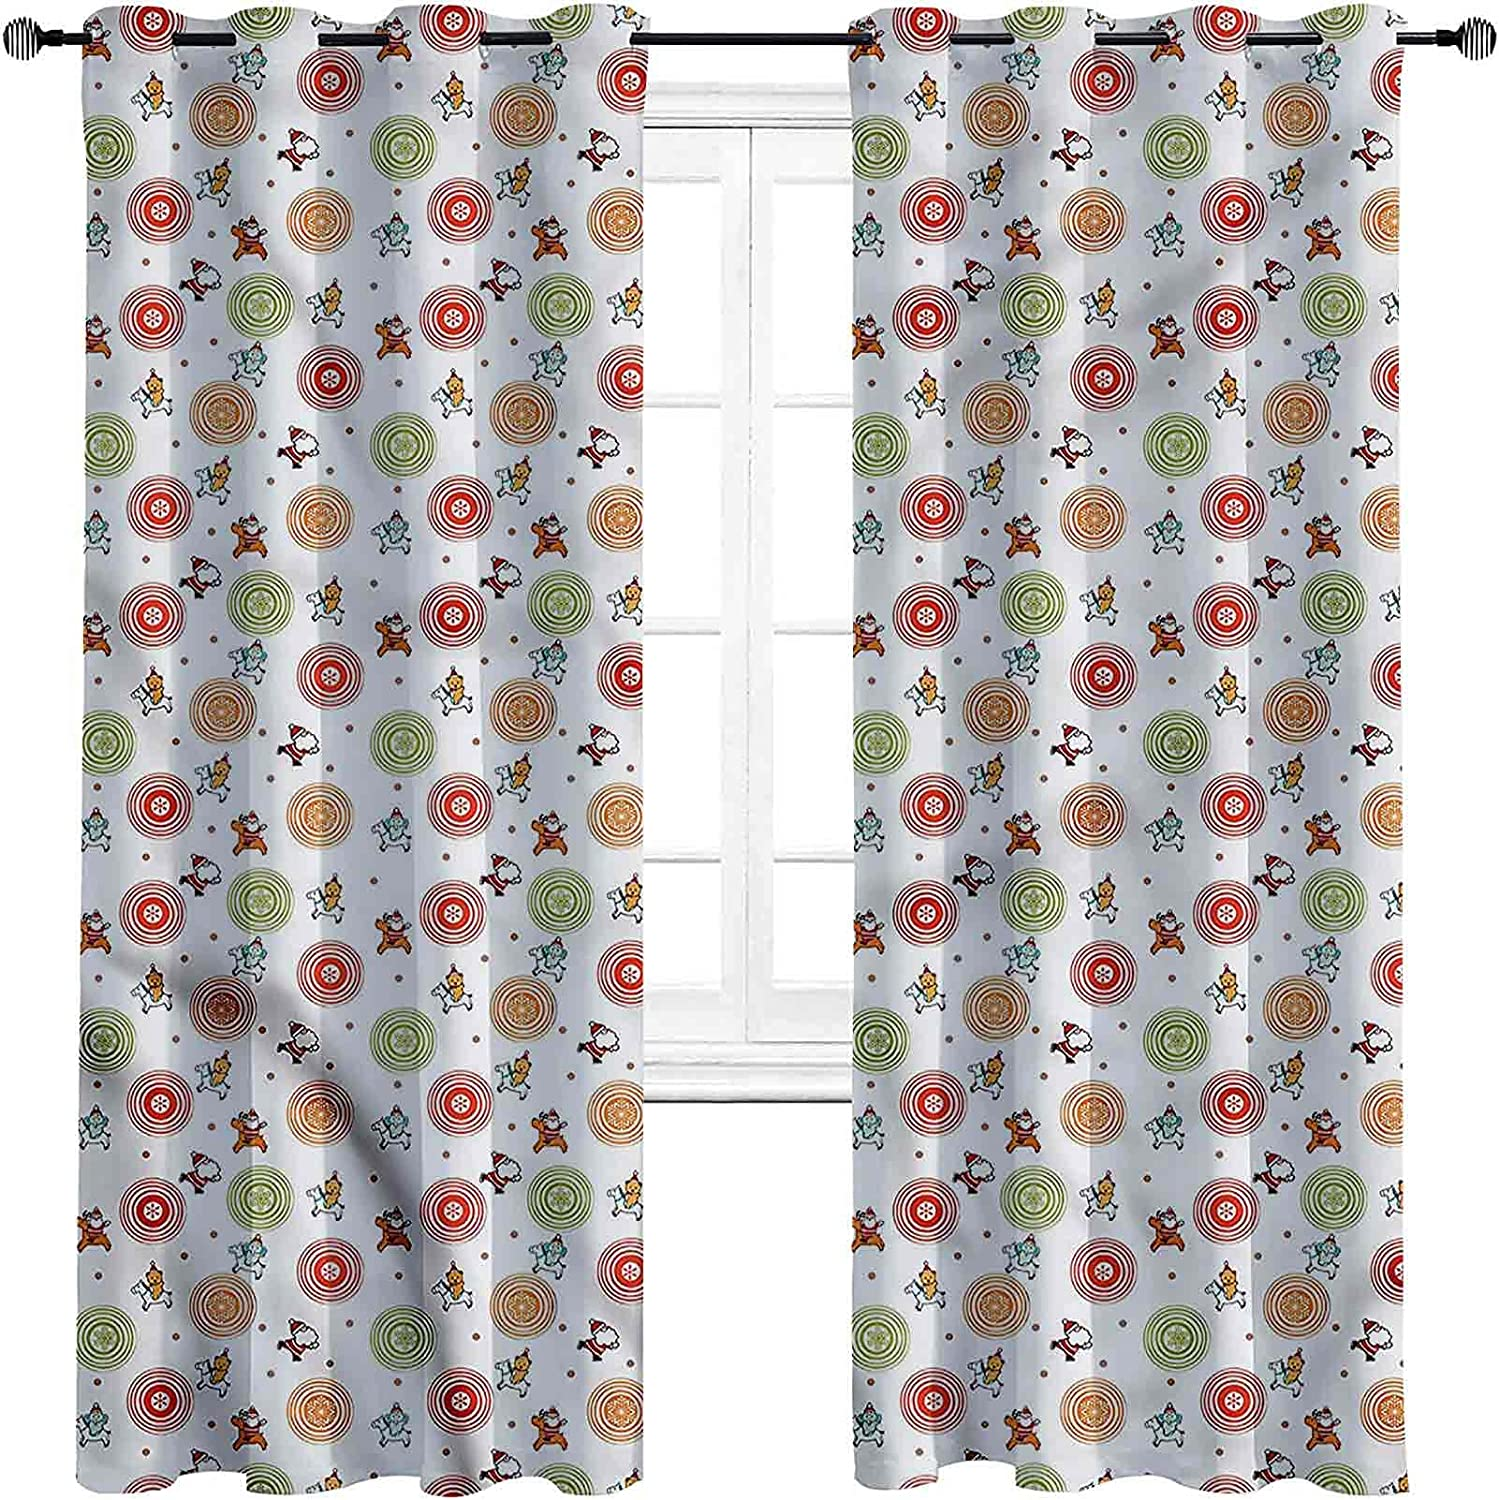 Christmas Blackout Curtains with Reindeer Sales for sale Ridin darken Grommets Beauty products